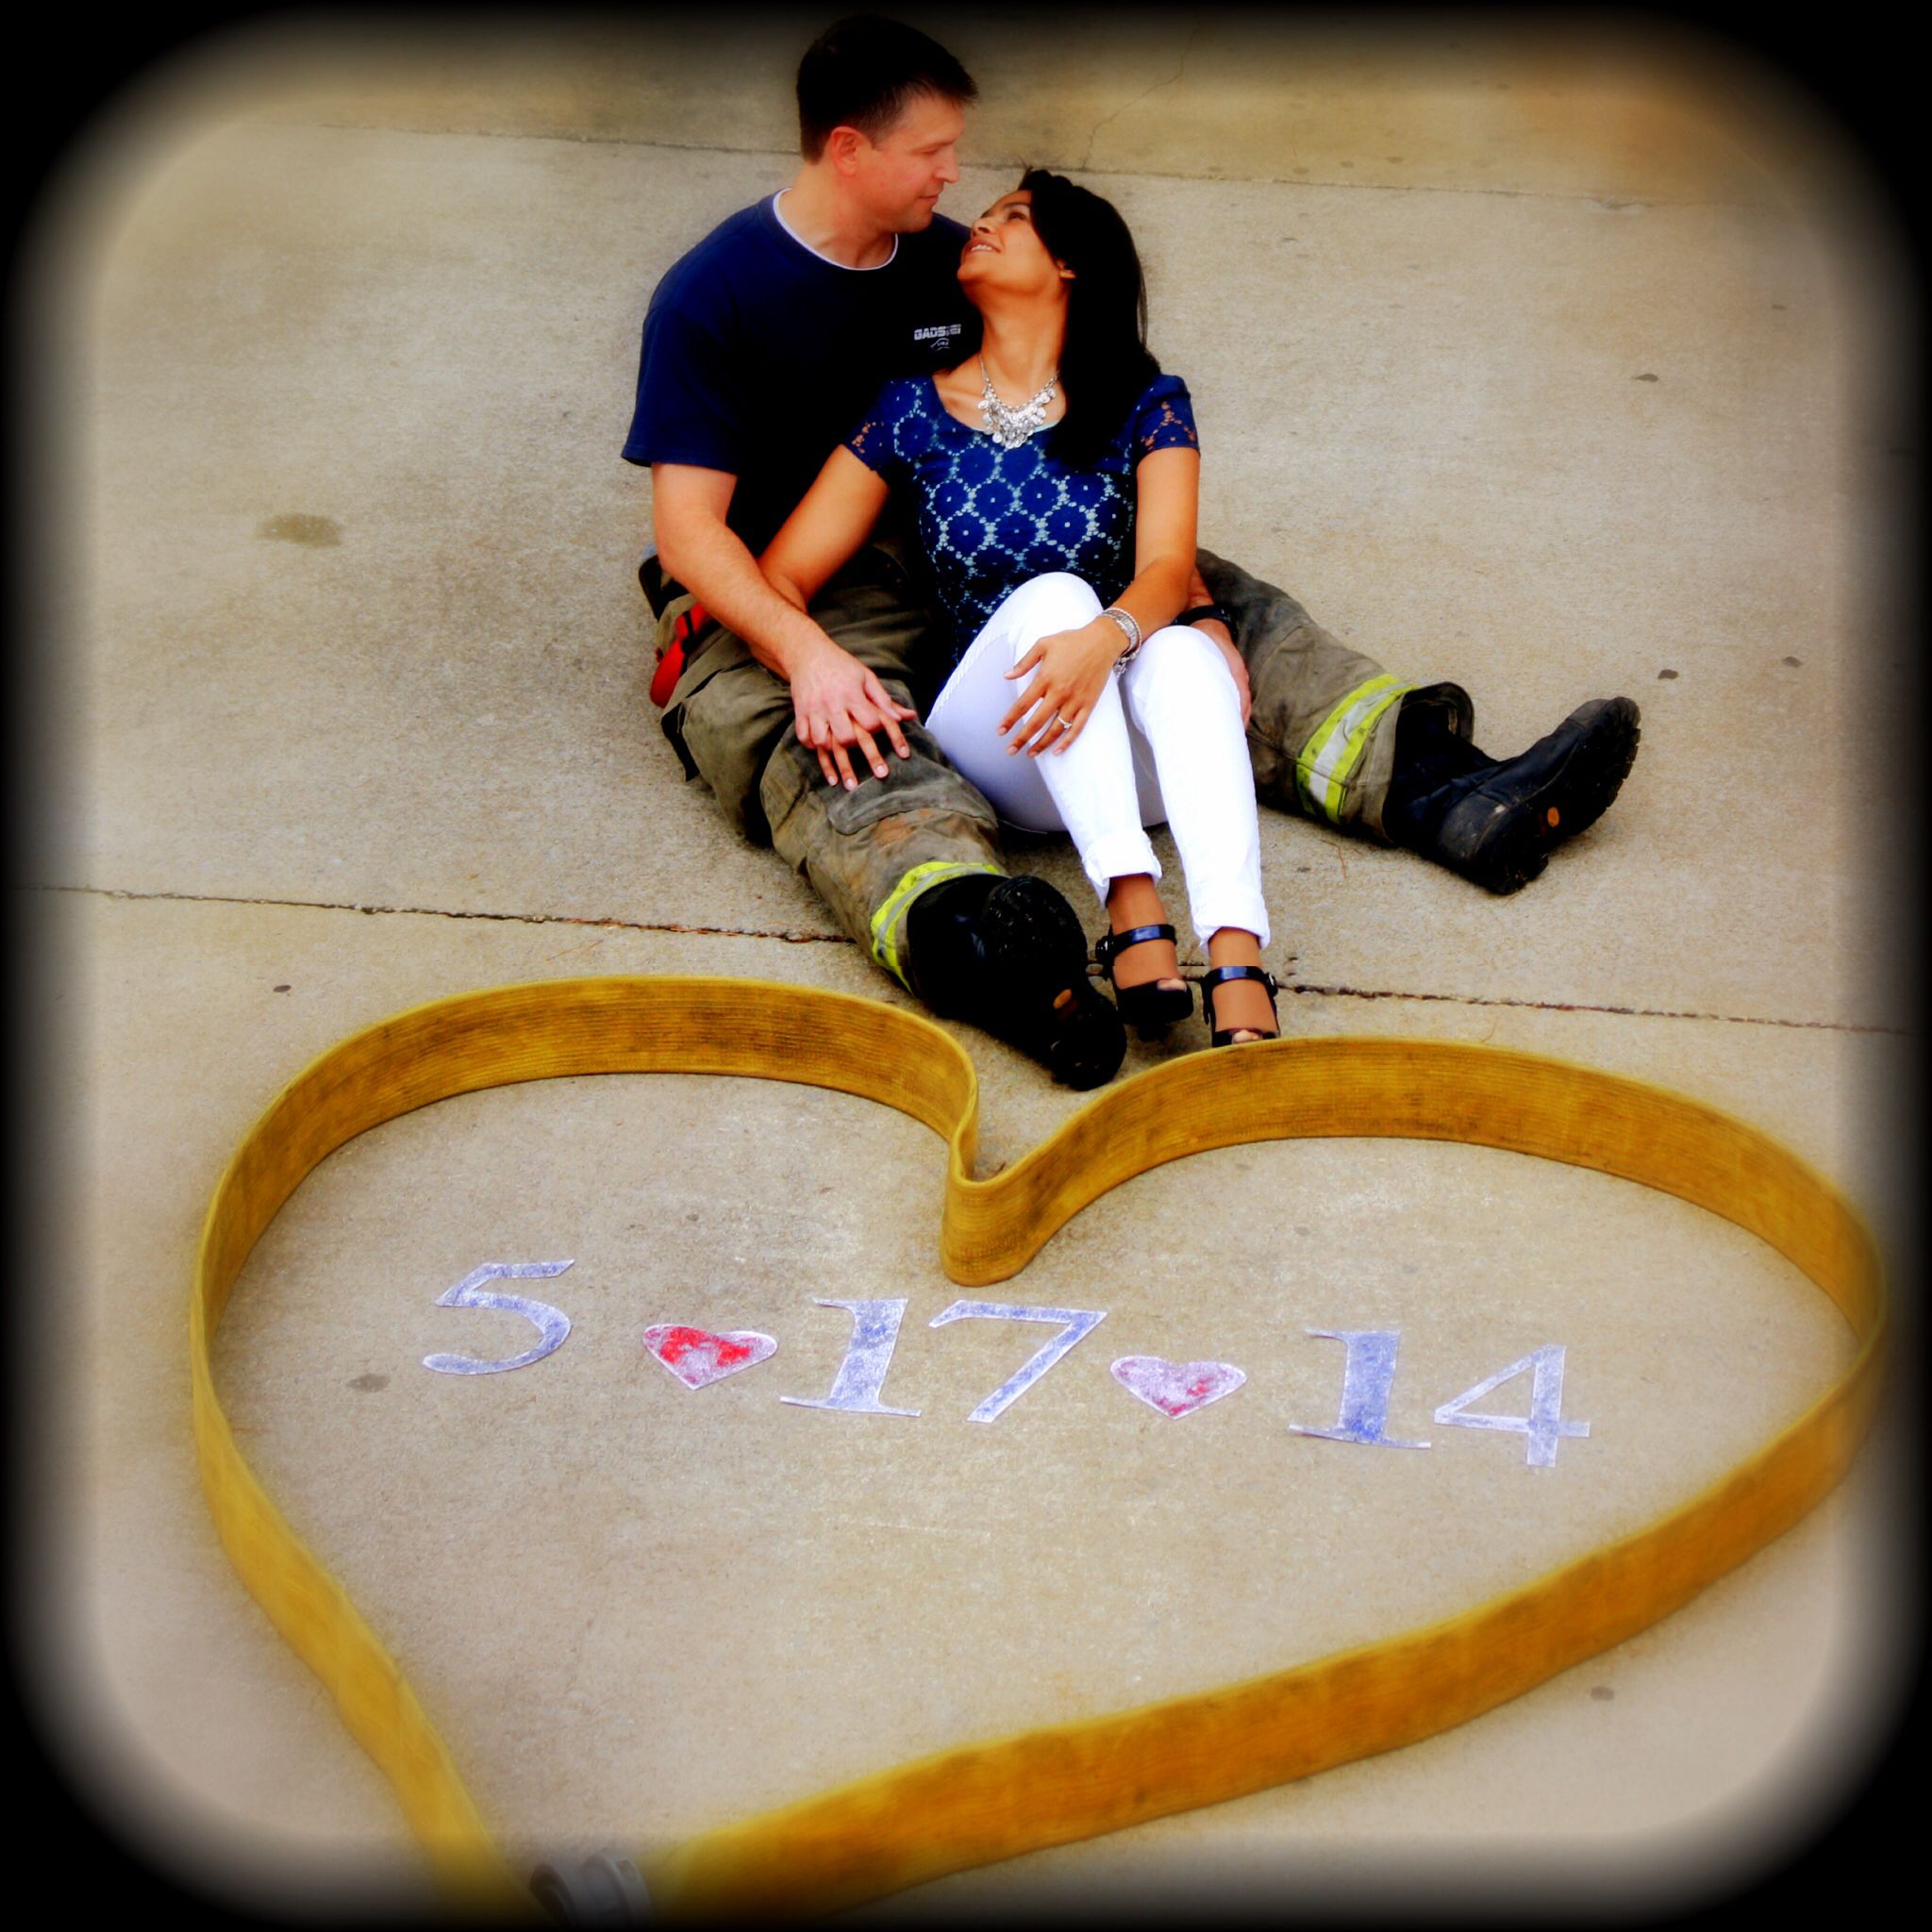 Firefighter Wedding Themes Ideas: Our Save The Date! Firefighter Love :)